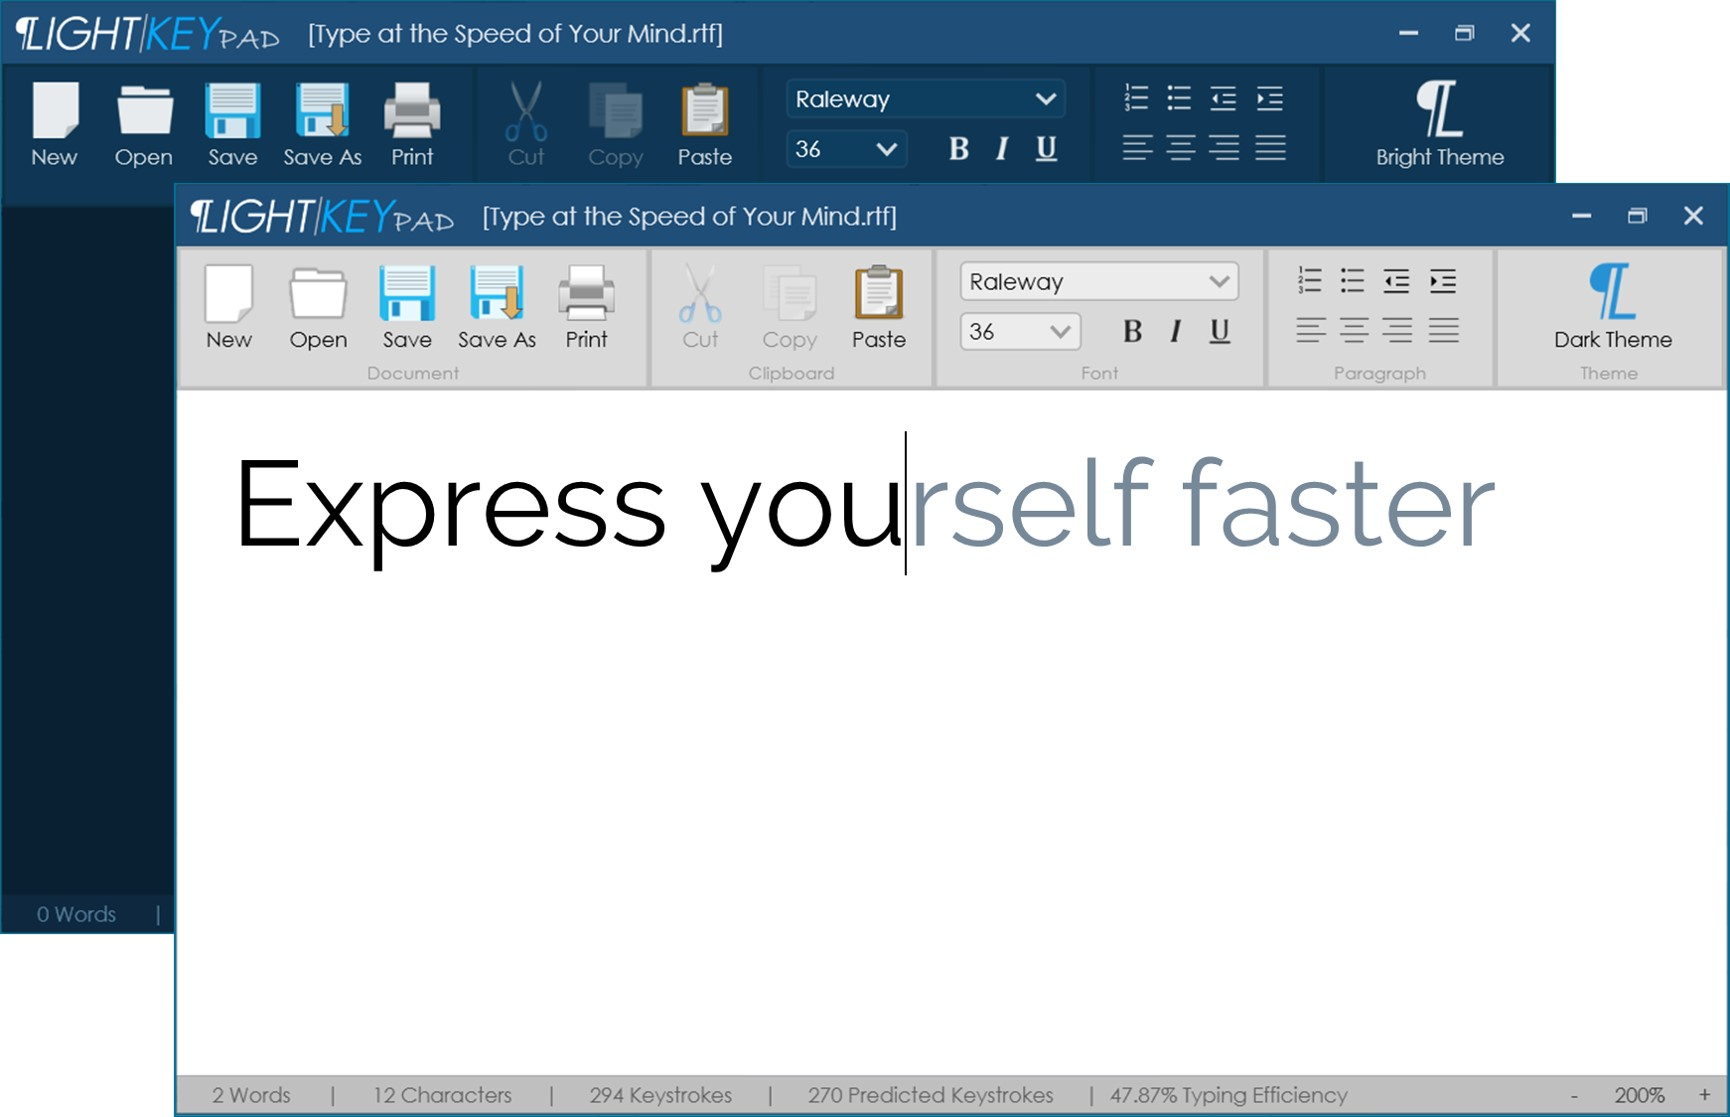 See more of Lightkey Free Predictive Text Editor